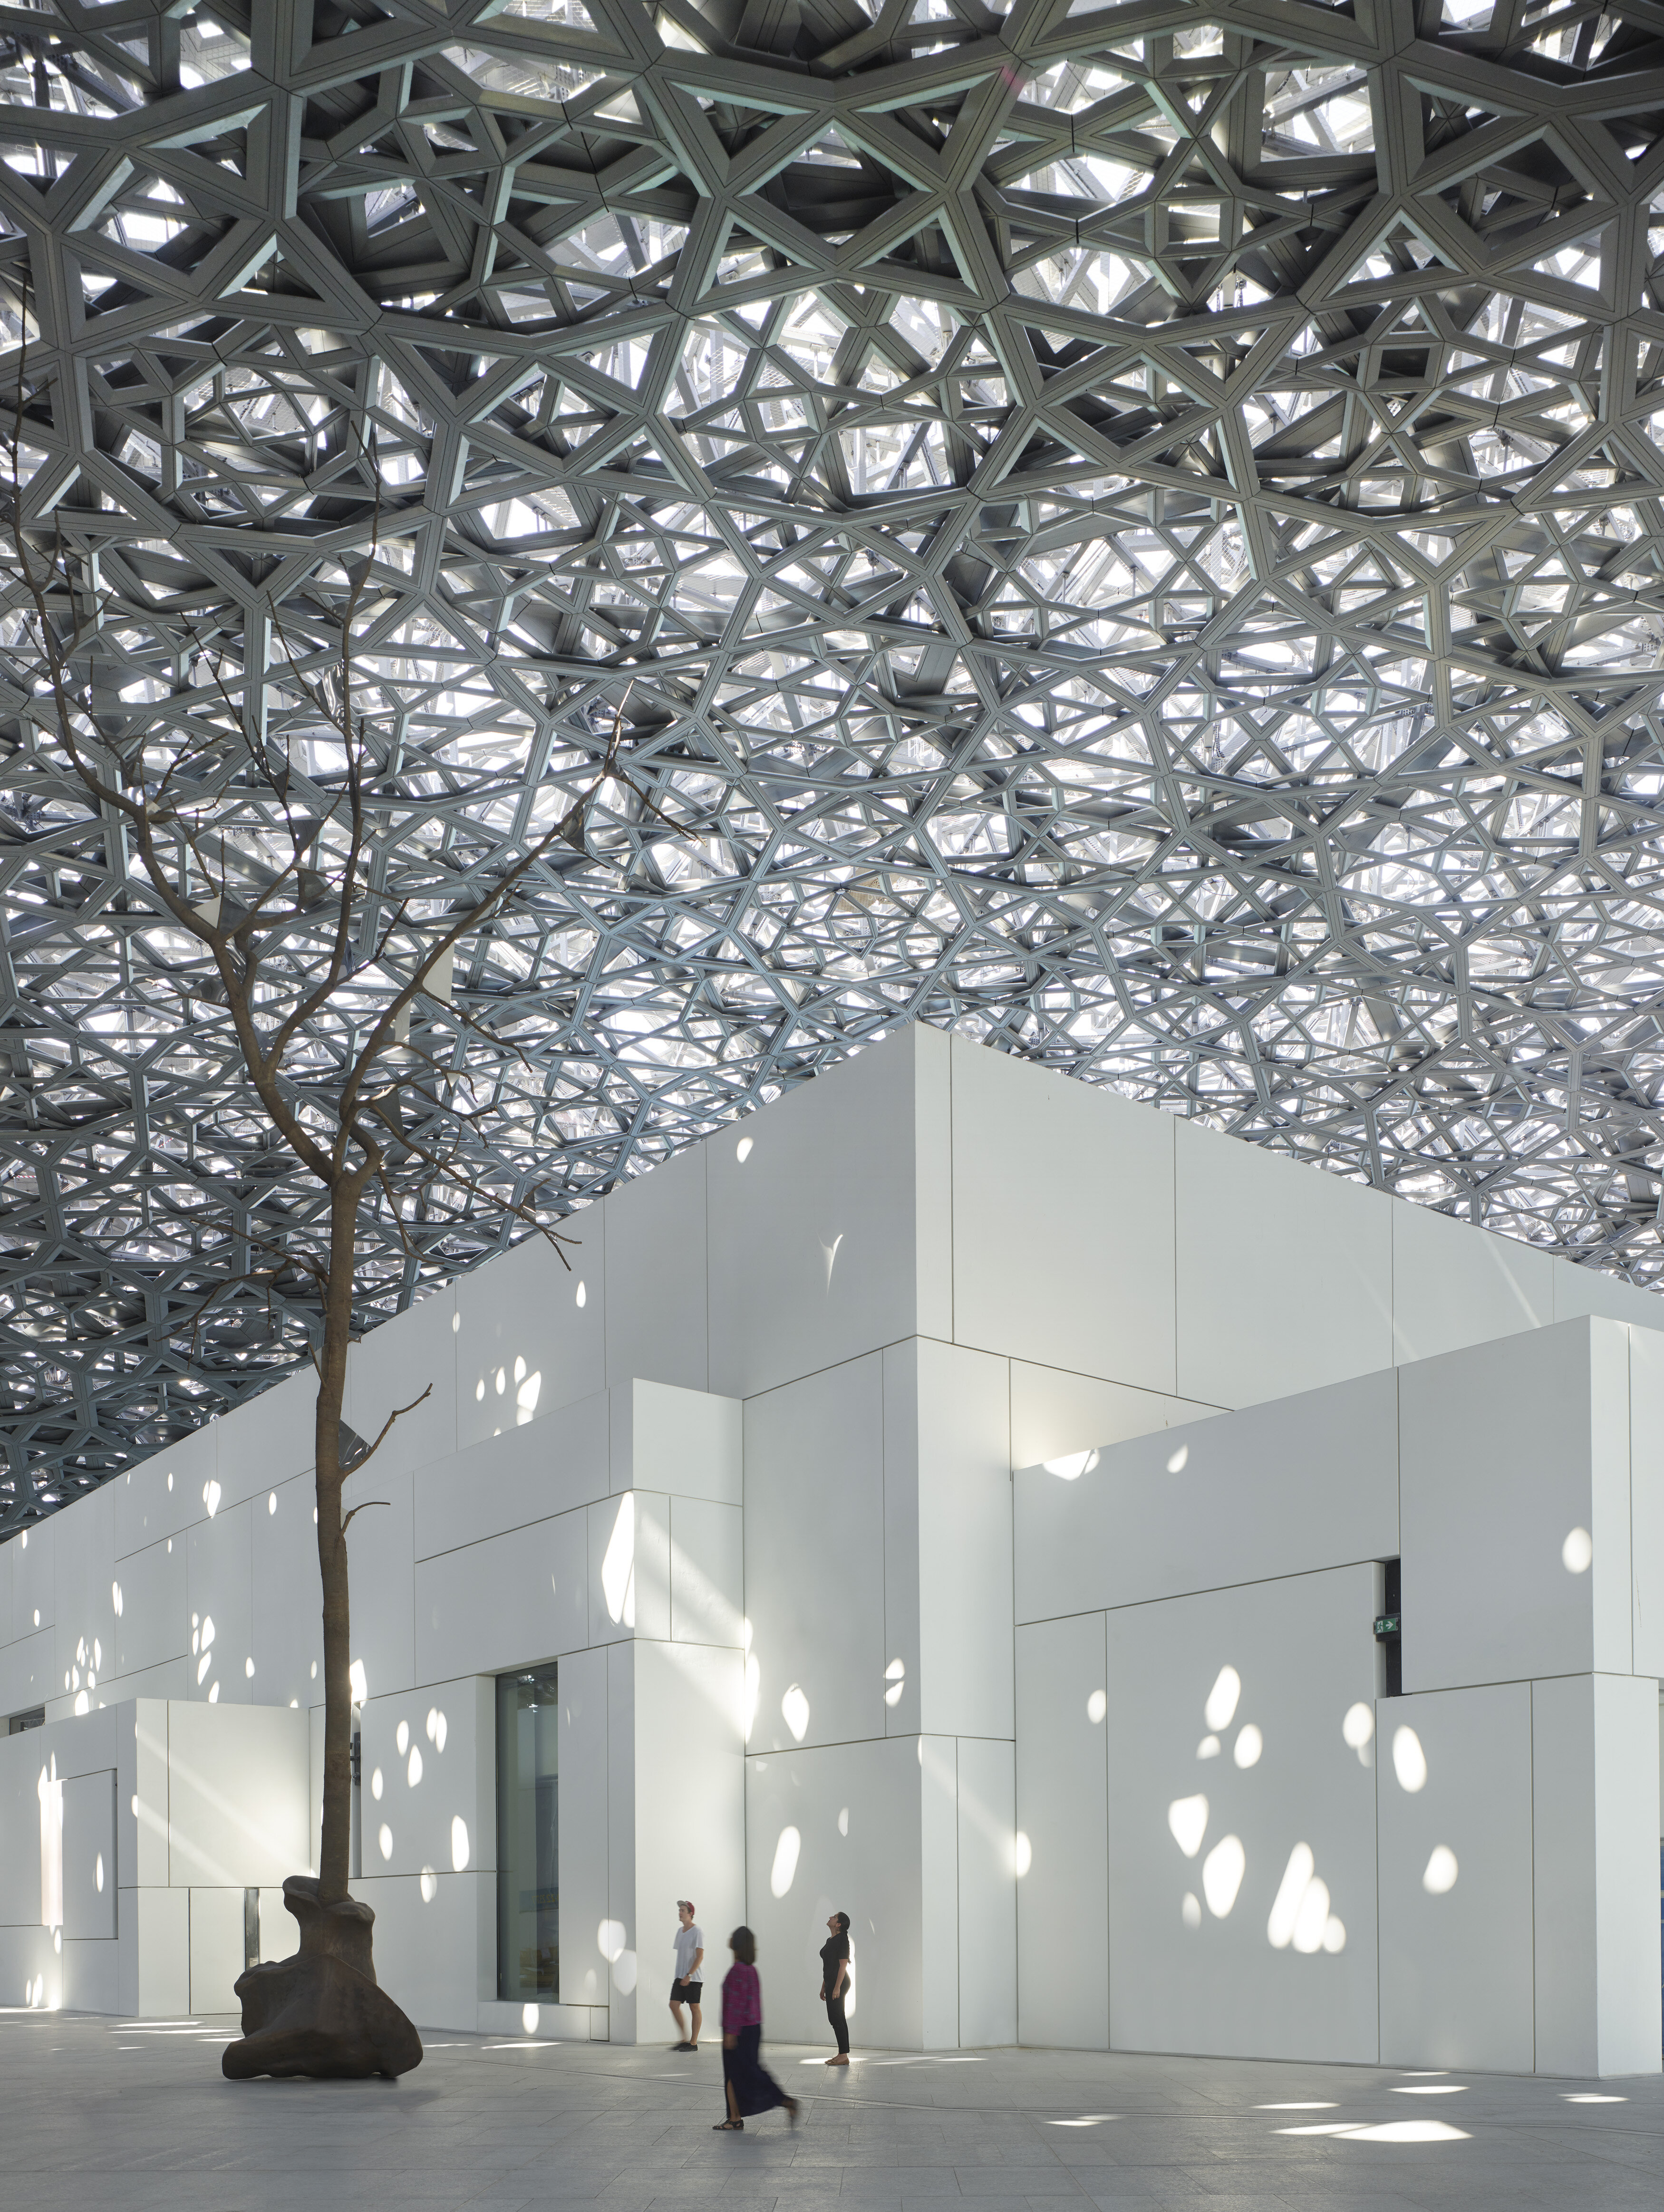 louvre museum Abu Dhabi, photo courtesy of the Abu Dhabi Dept of Culture & Tourism